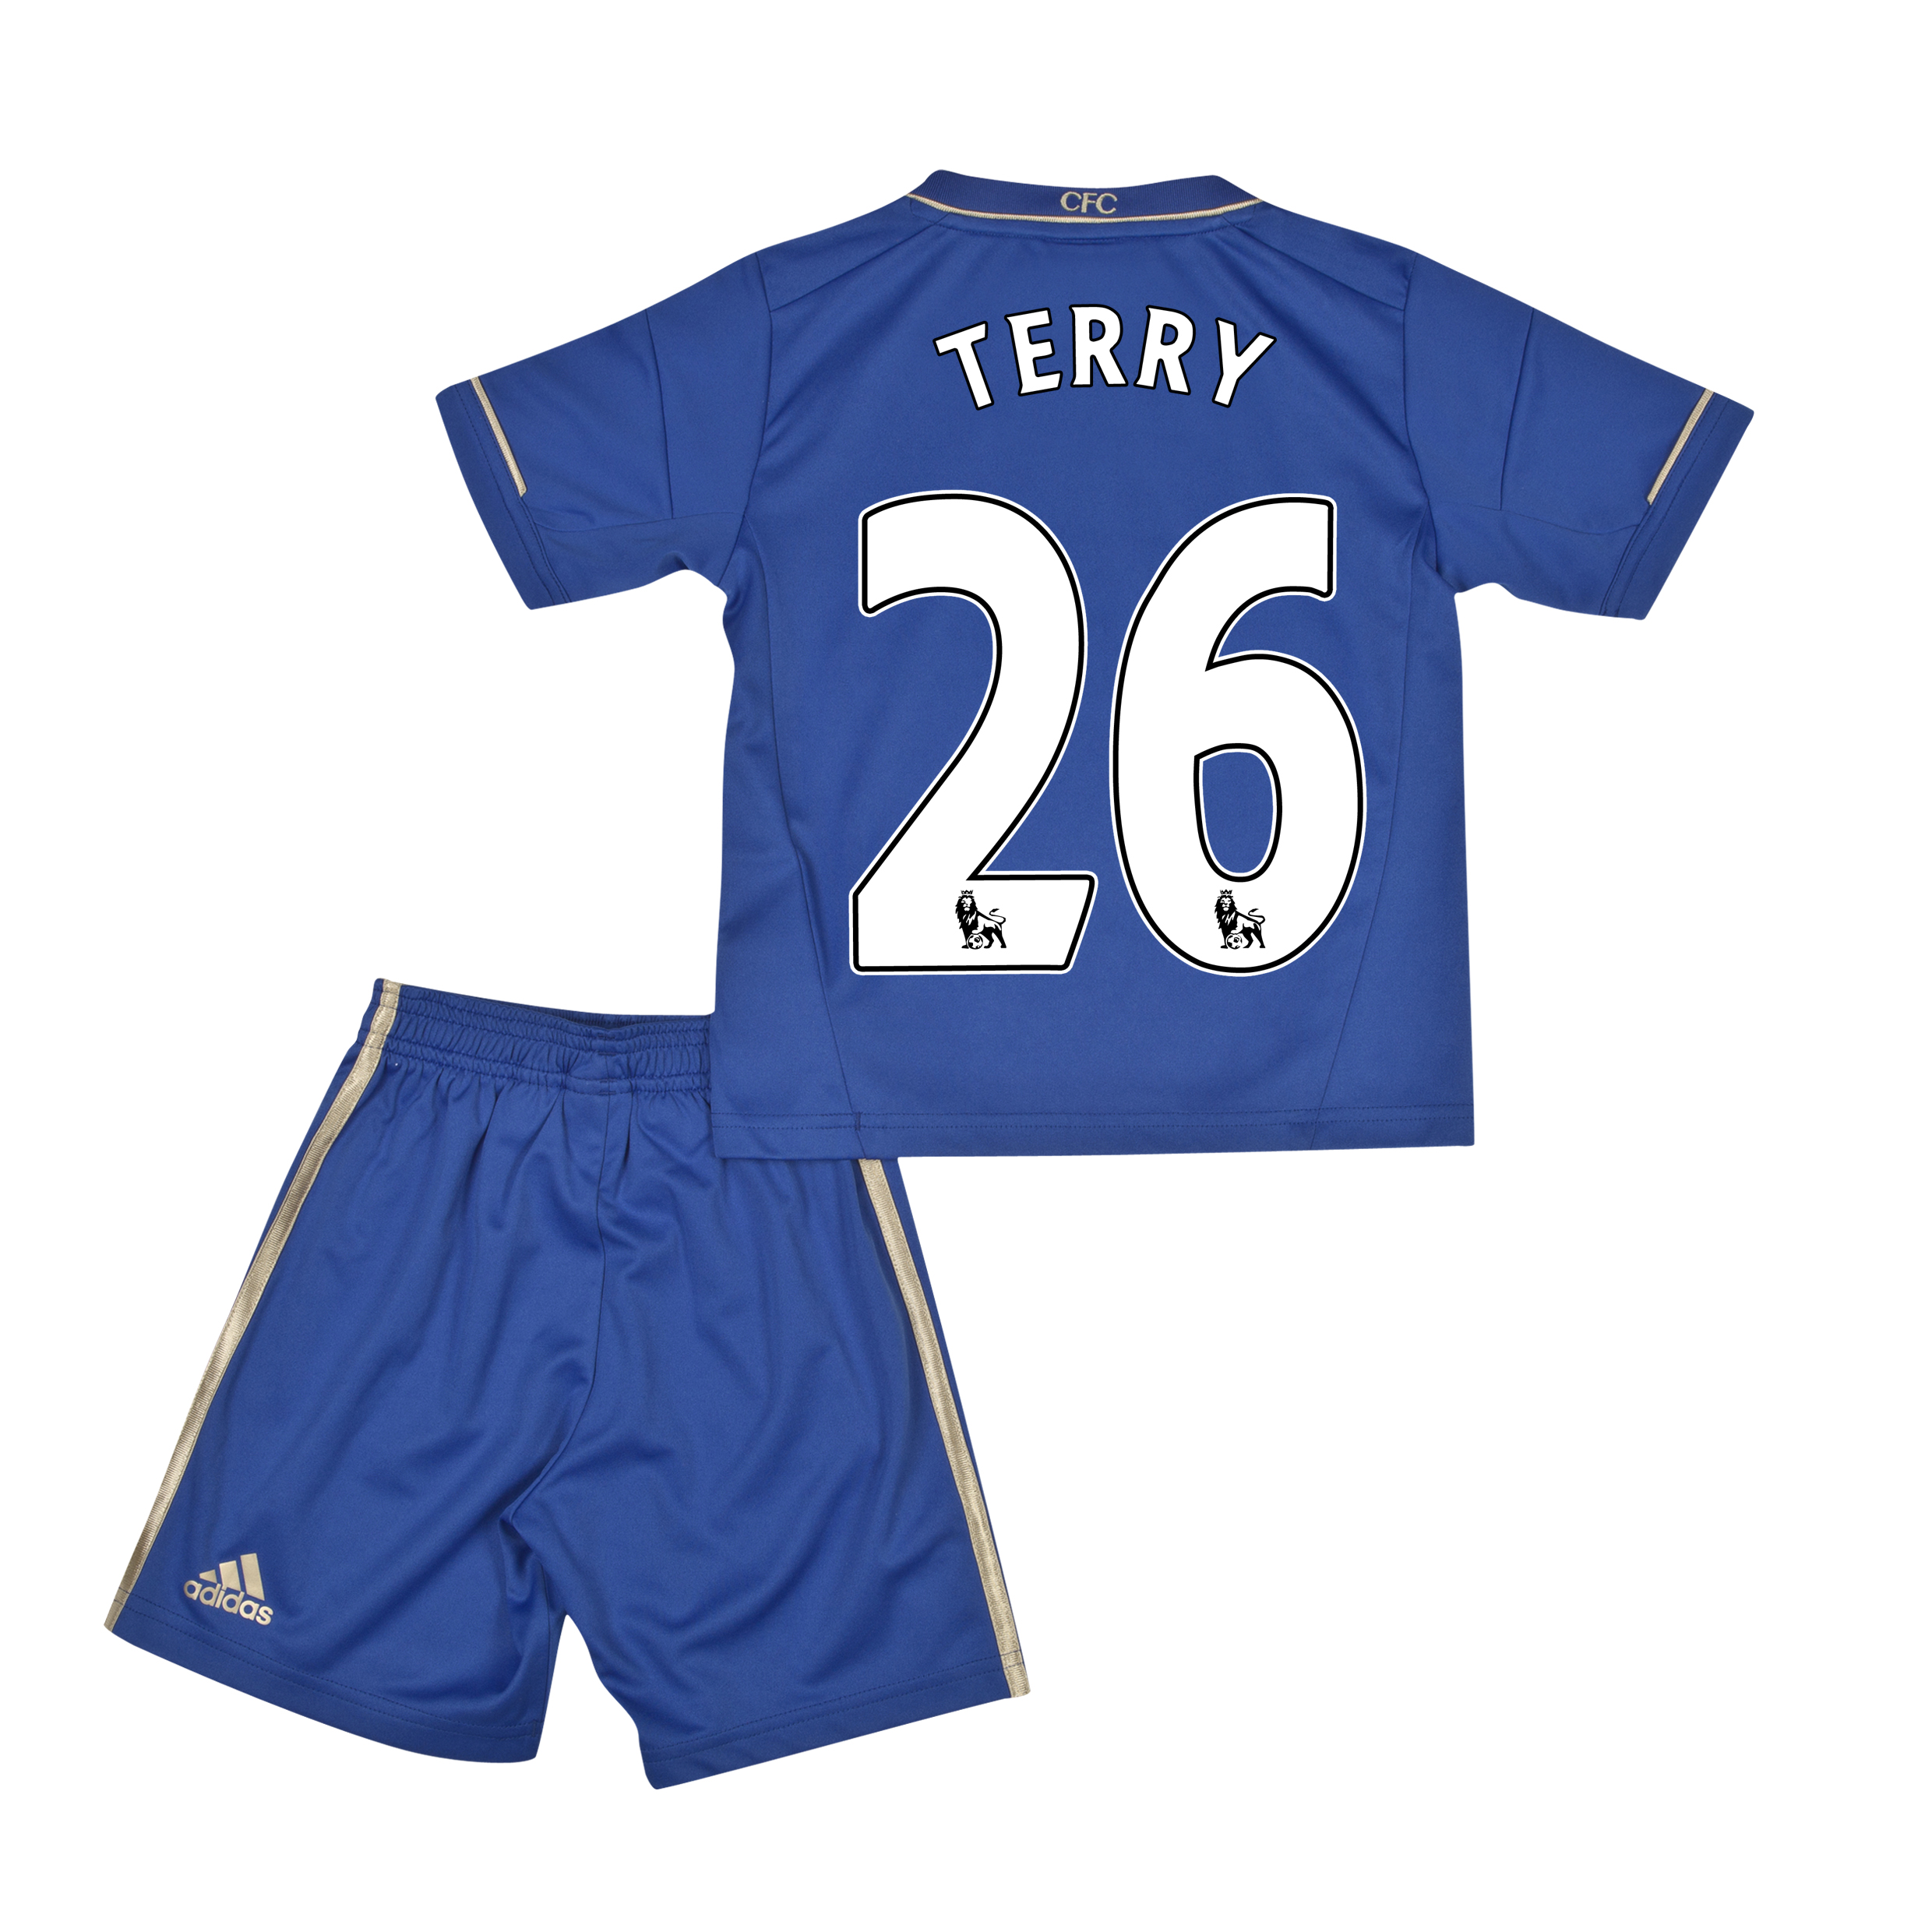 Chelsea Home Mini Kit 2012/13 with Terry 26 printing